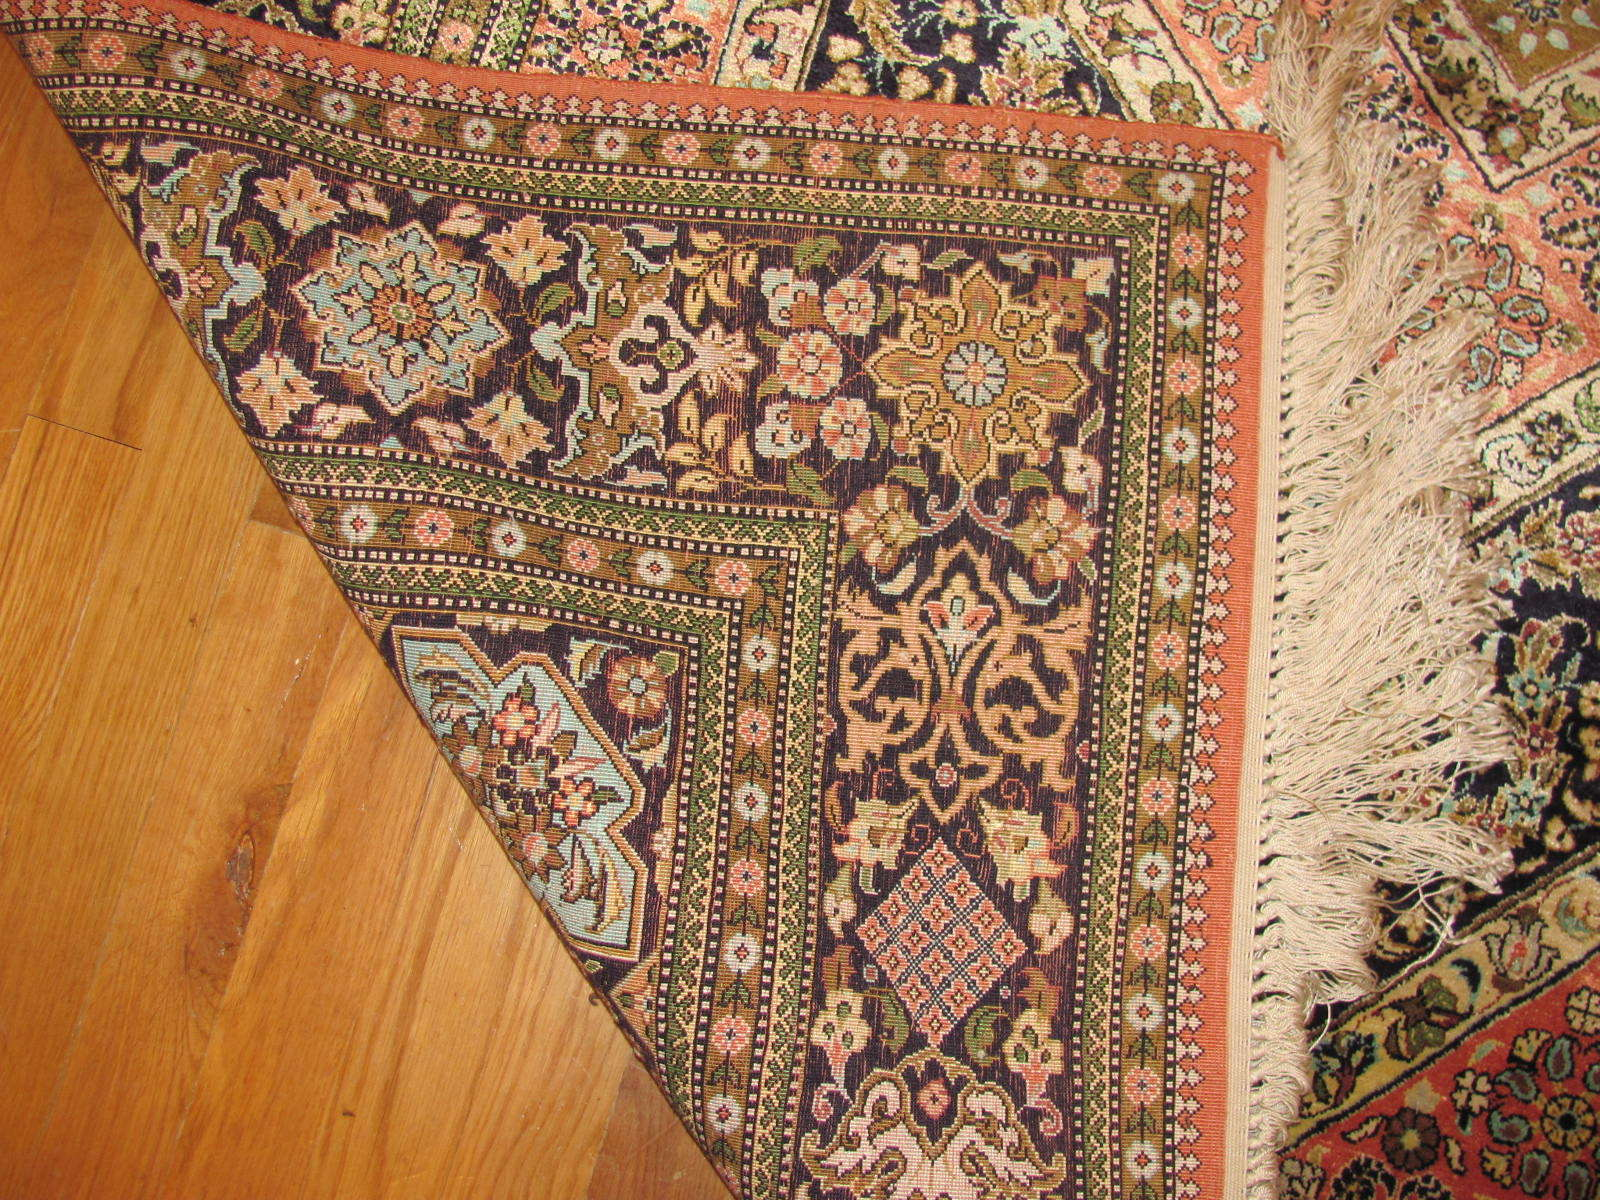 24550 persian silk quom rug 4,6x7,2 -2